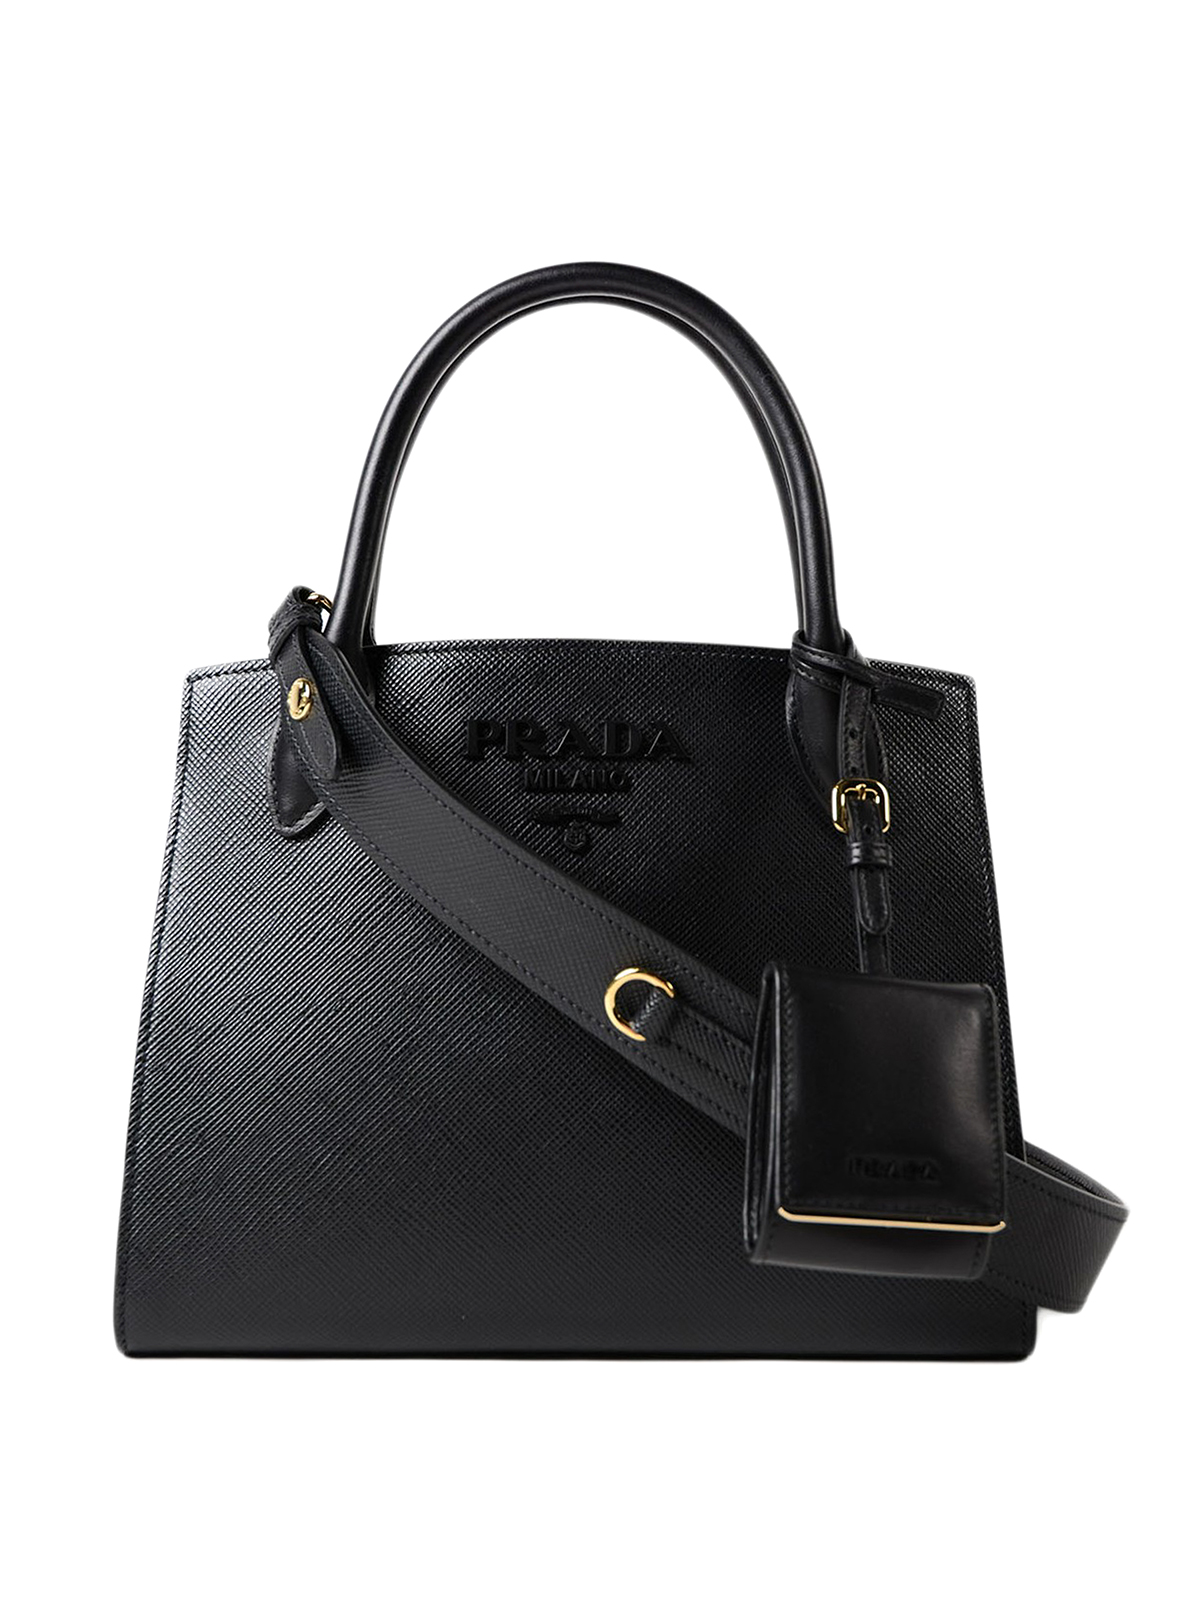 Monochrome leather bag by Prada - totes bags | Shop online ...